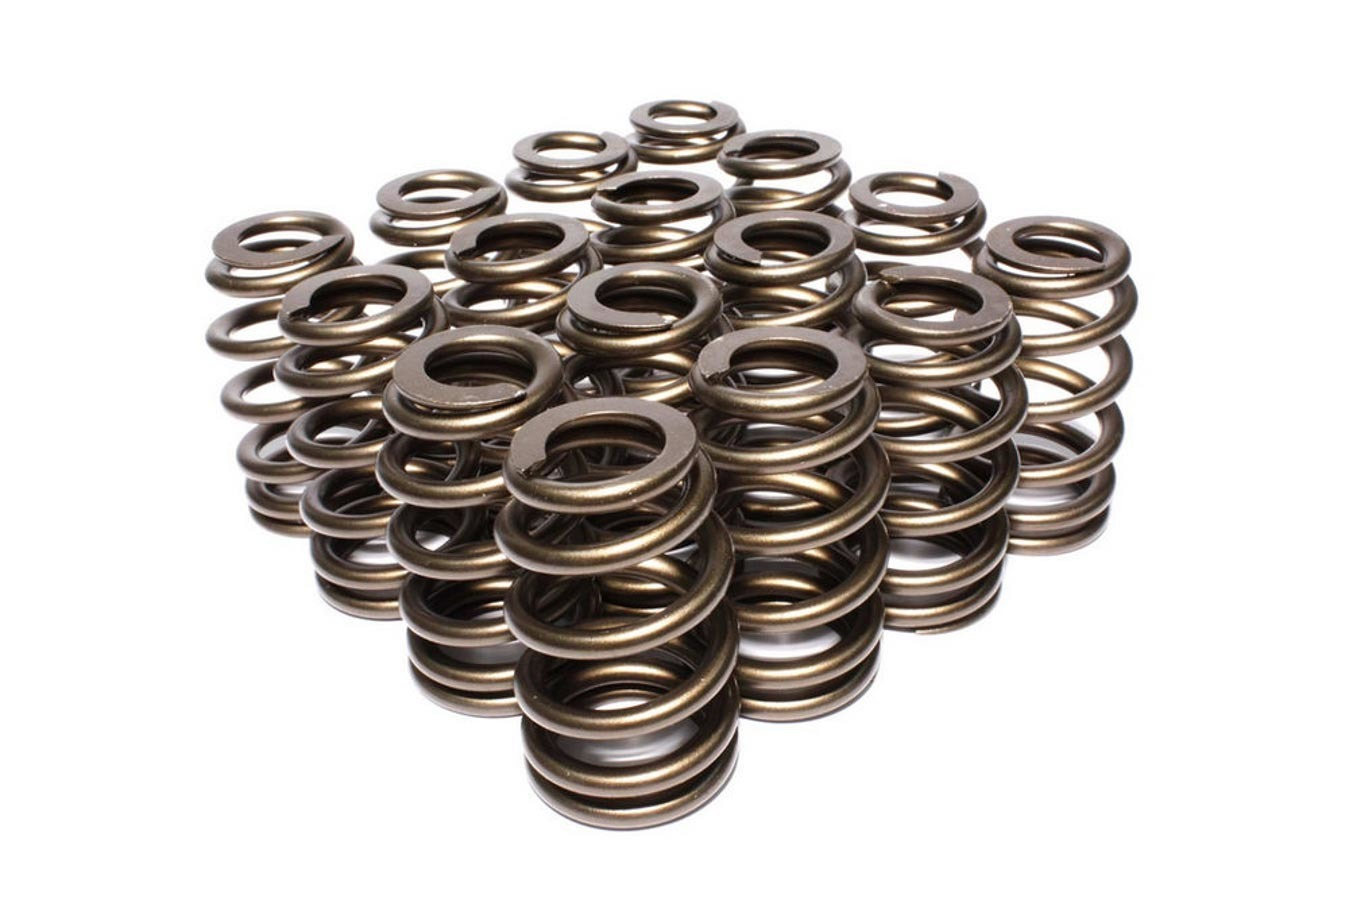 Comp Cams 26055-16 Valve Spring, Race Sportsman, Beehive Spring, 400 lb/in Spring Rate, 1.225 in Coil Bind, 1.585 in OD, Set of 16